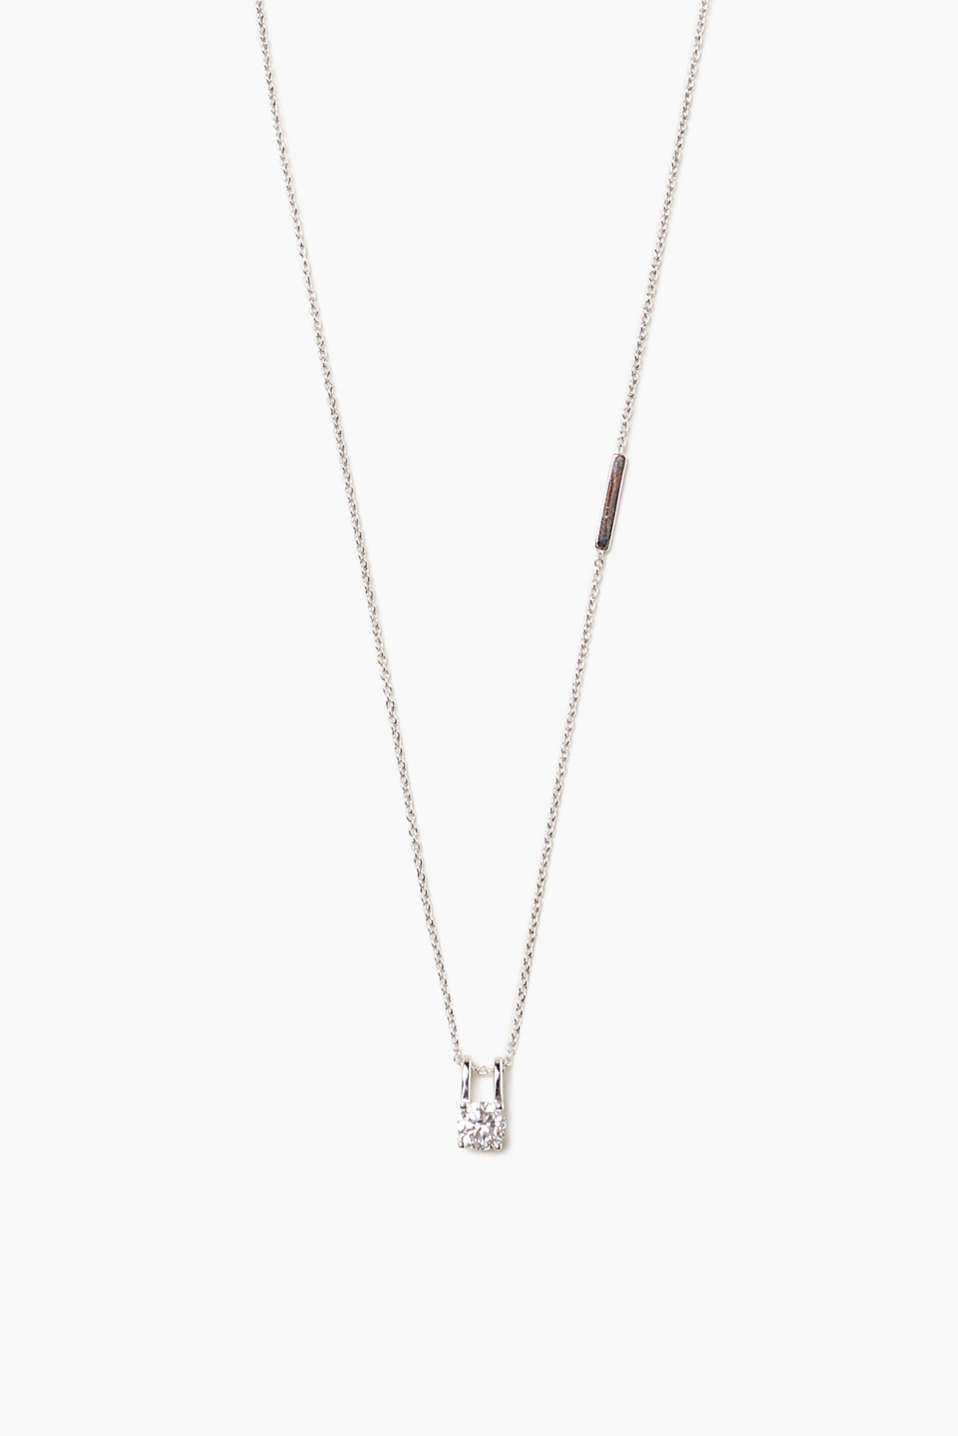 Timeless elegance! This fine necklace impresses with its single, set zirconia pendant.